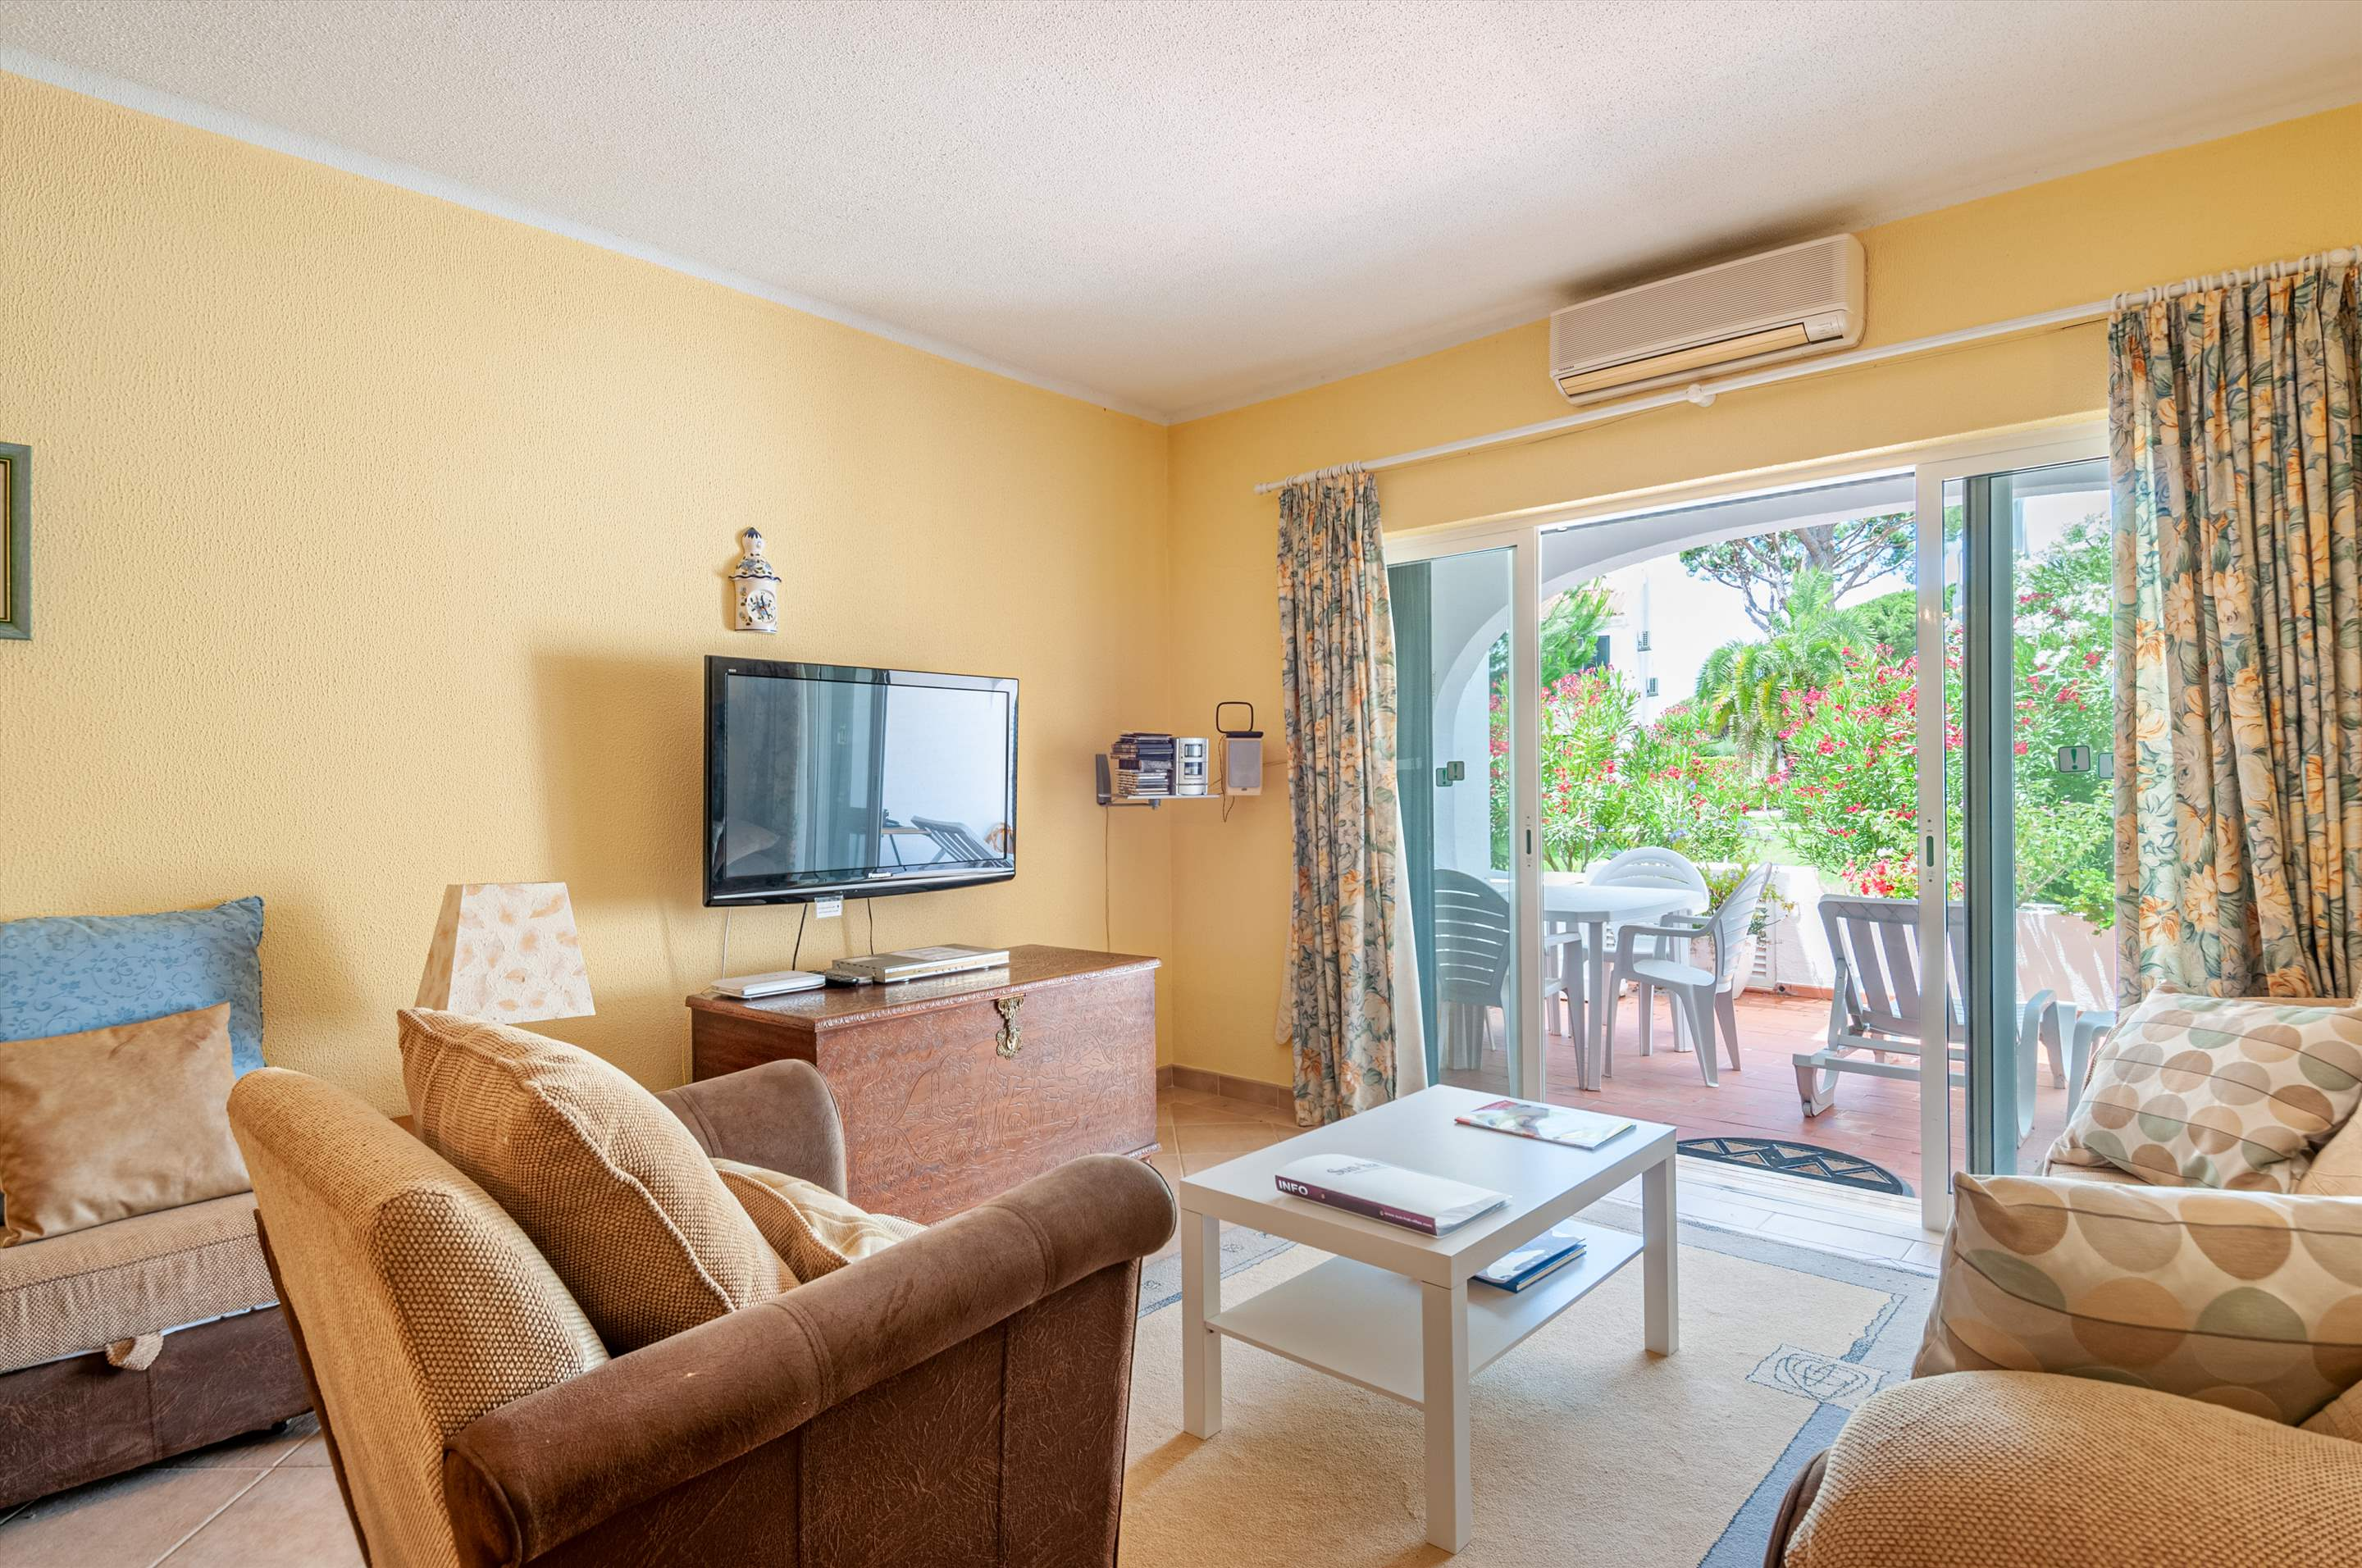 Apartment Joceta , 1 bedroom apartment in Vale do Lobo, Algarve Photo #2